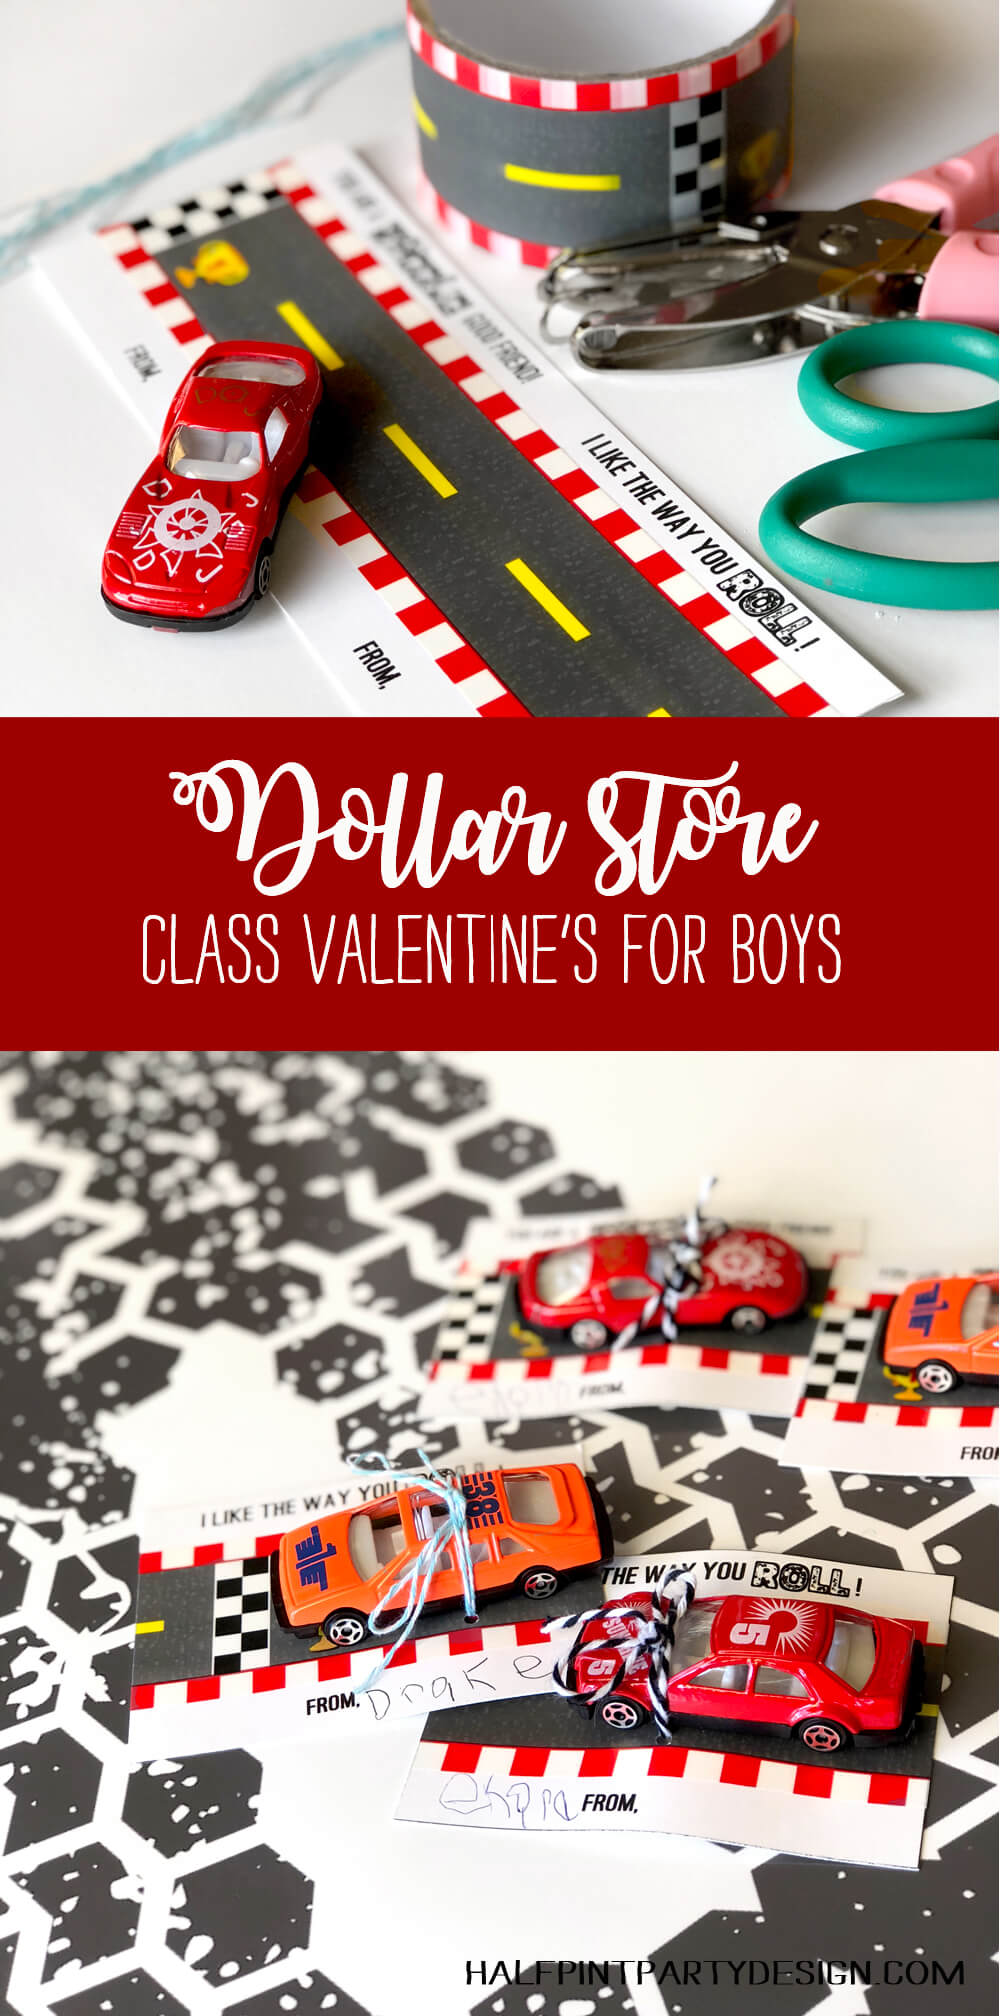 Dollar store class valentine's for boys with car valentine printable